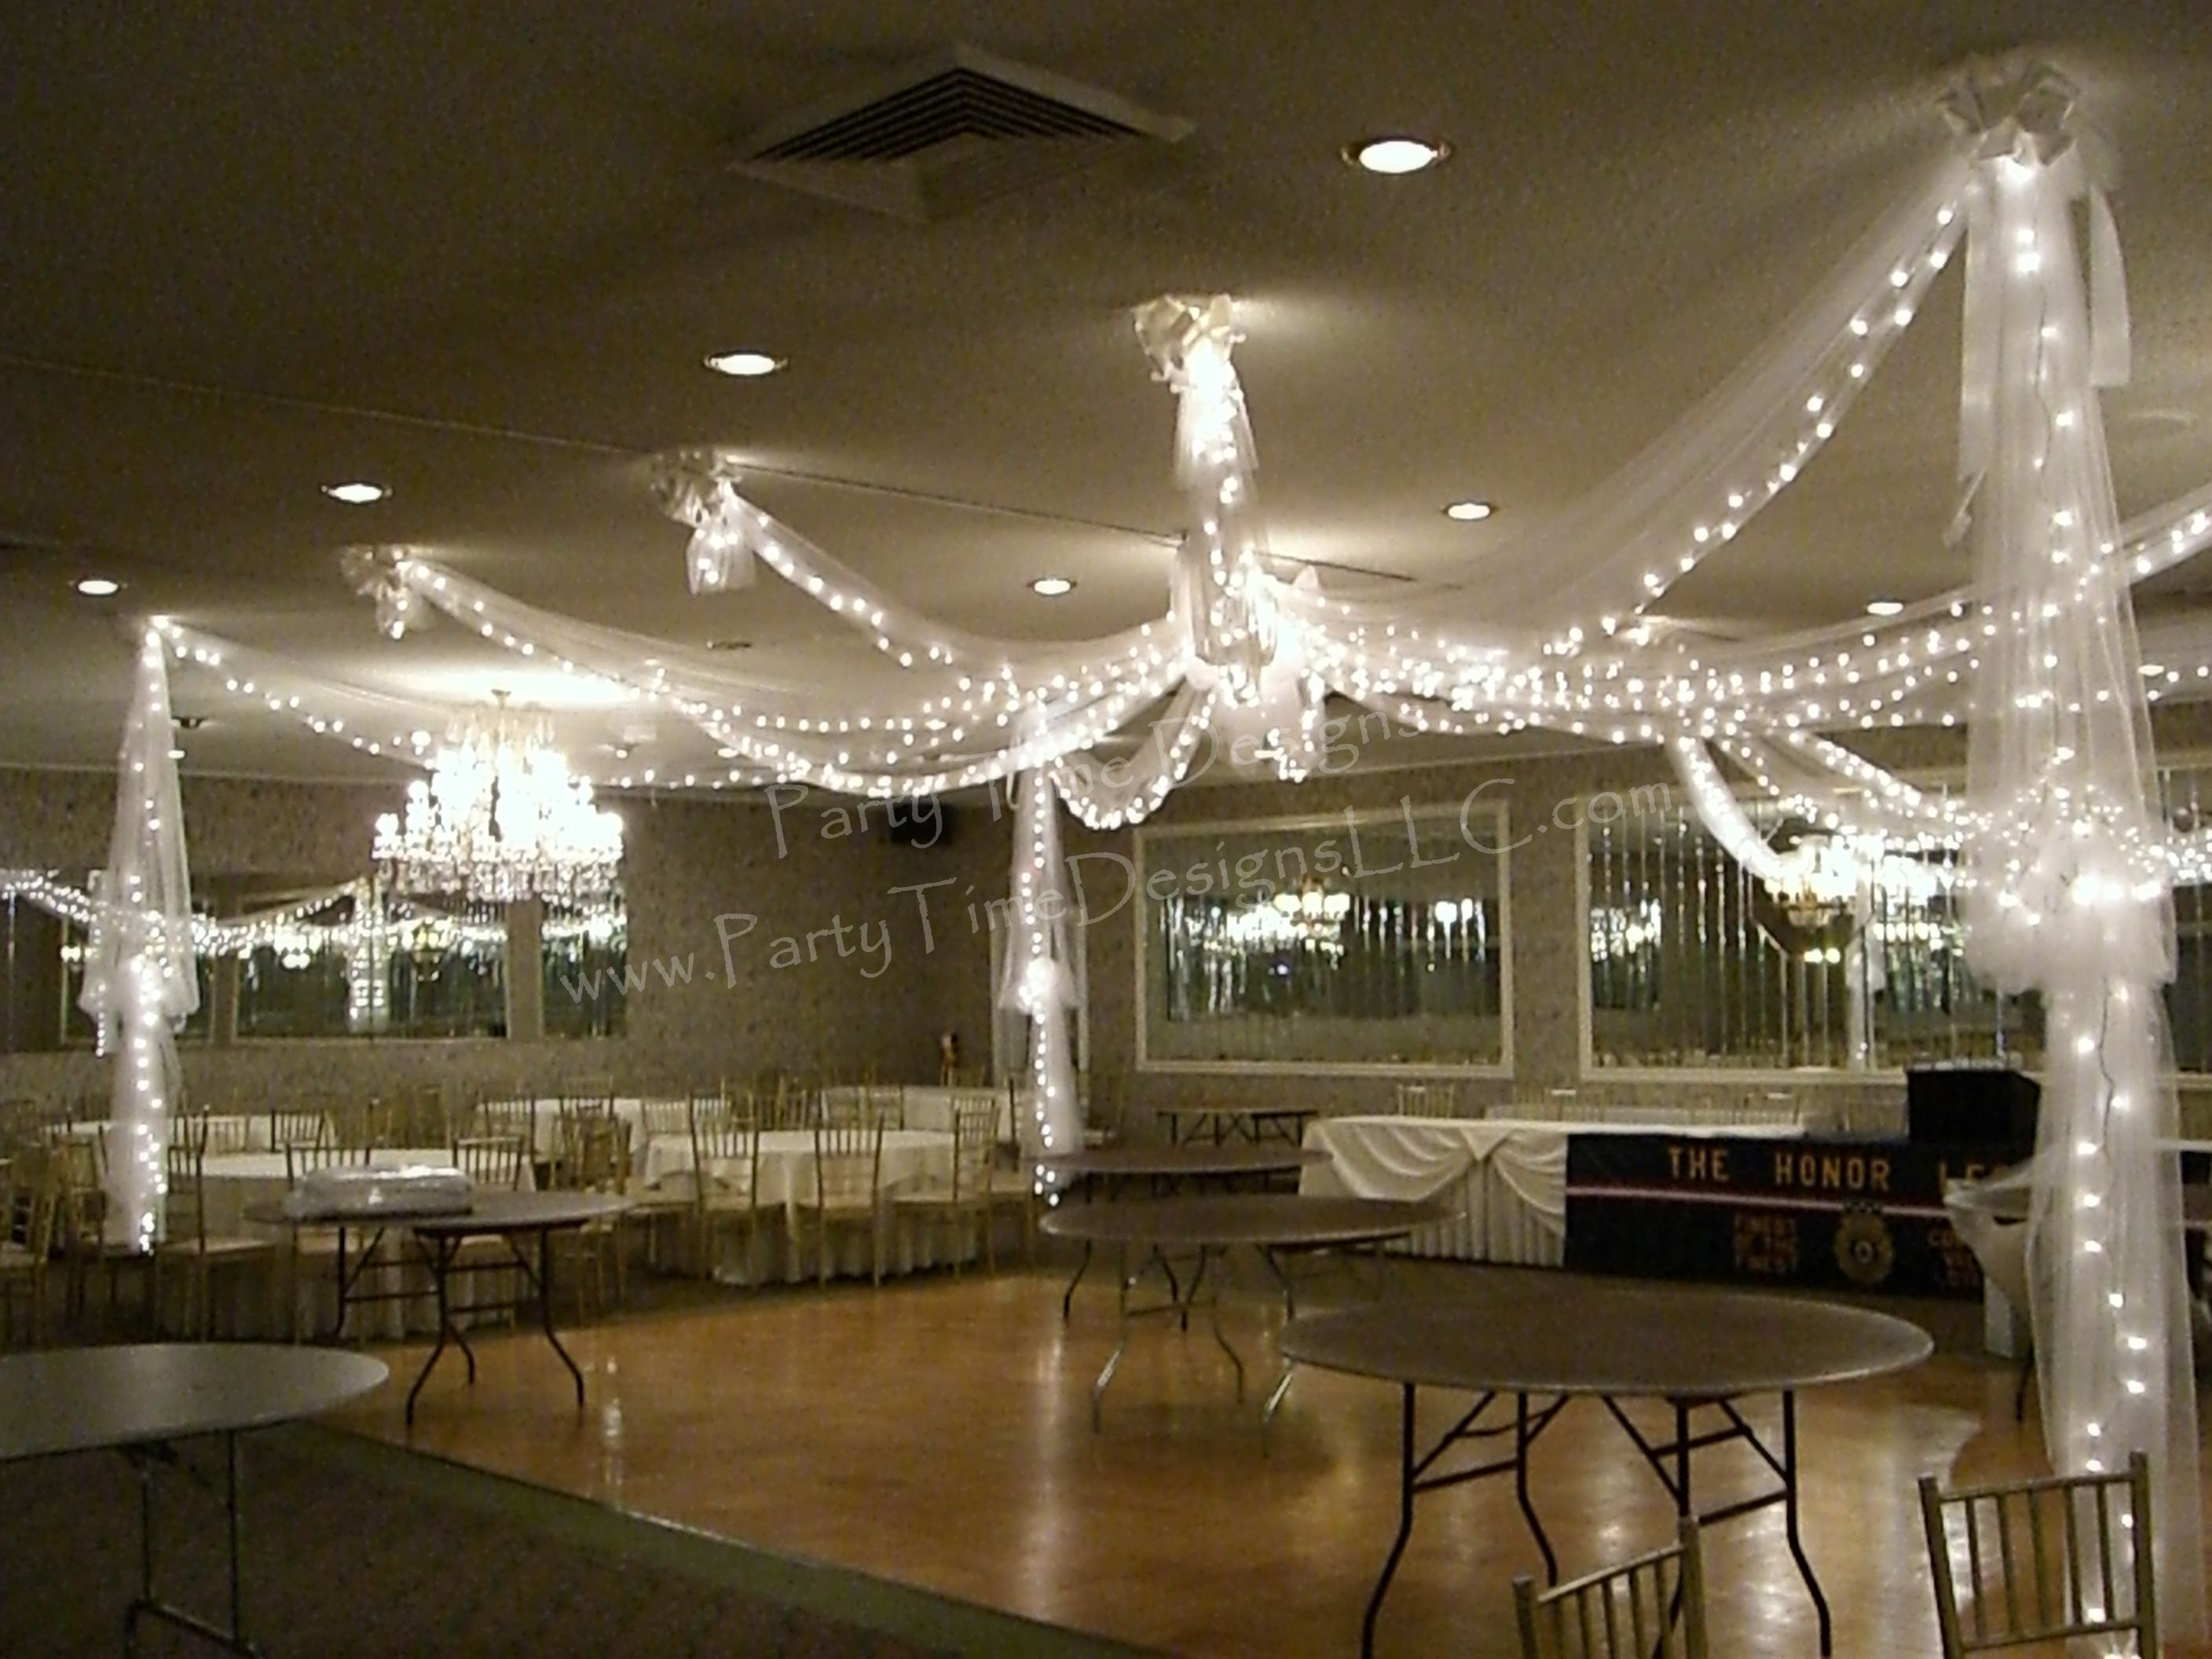 Dance Floor Tulle Draping With Lights